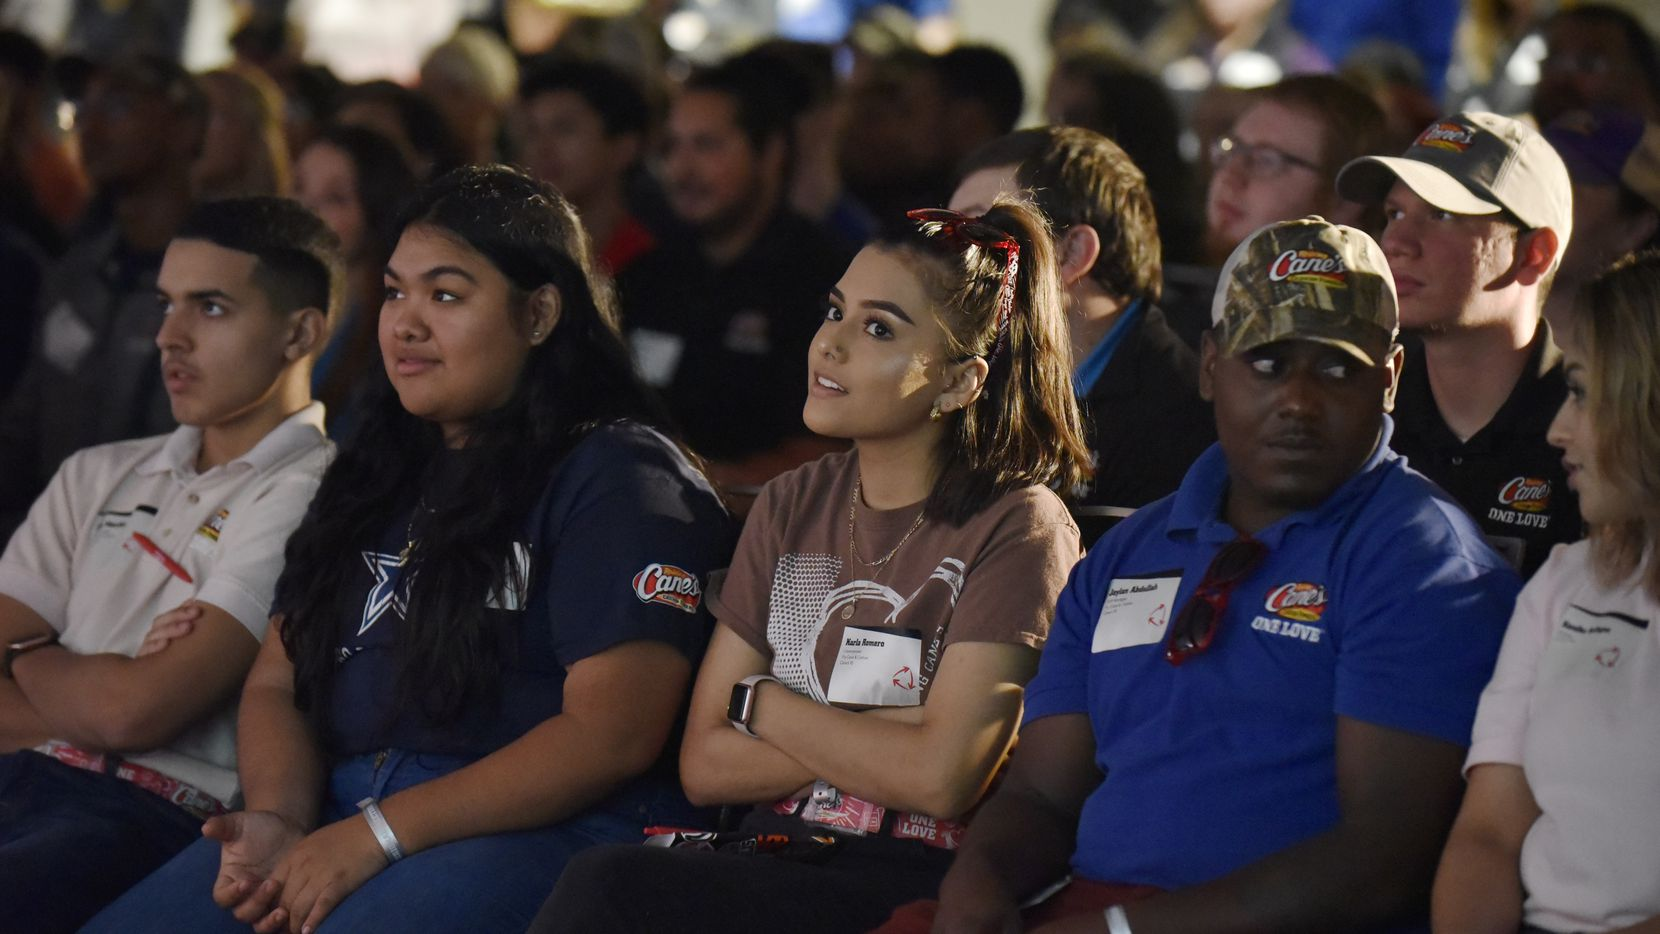 Raising Cane's crewmembers Astrid Mateo, second from lleft, Karla Romero and shift manager Jaylan Abdullah, right, listen to a speaker at a regional meeting in Frisco.